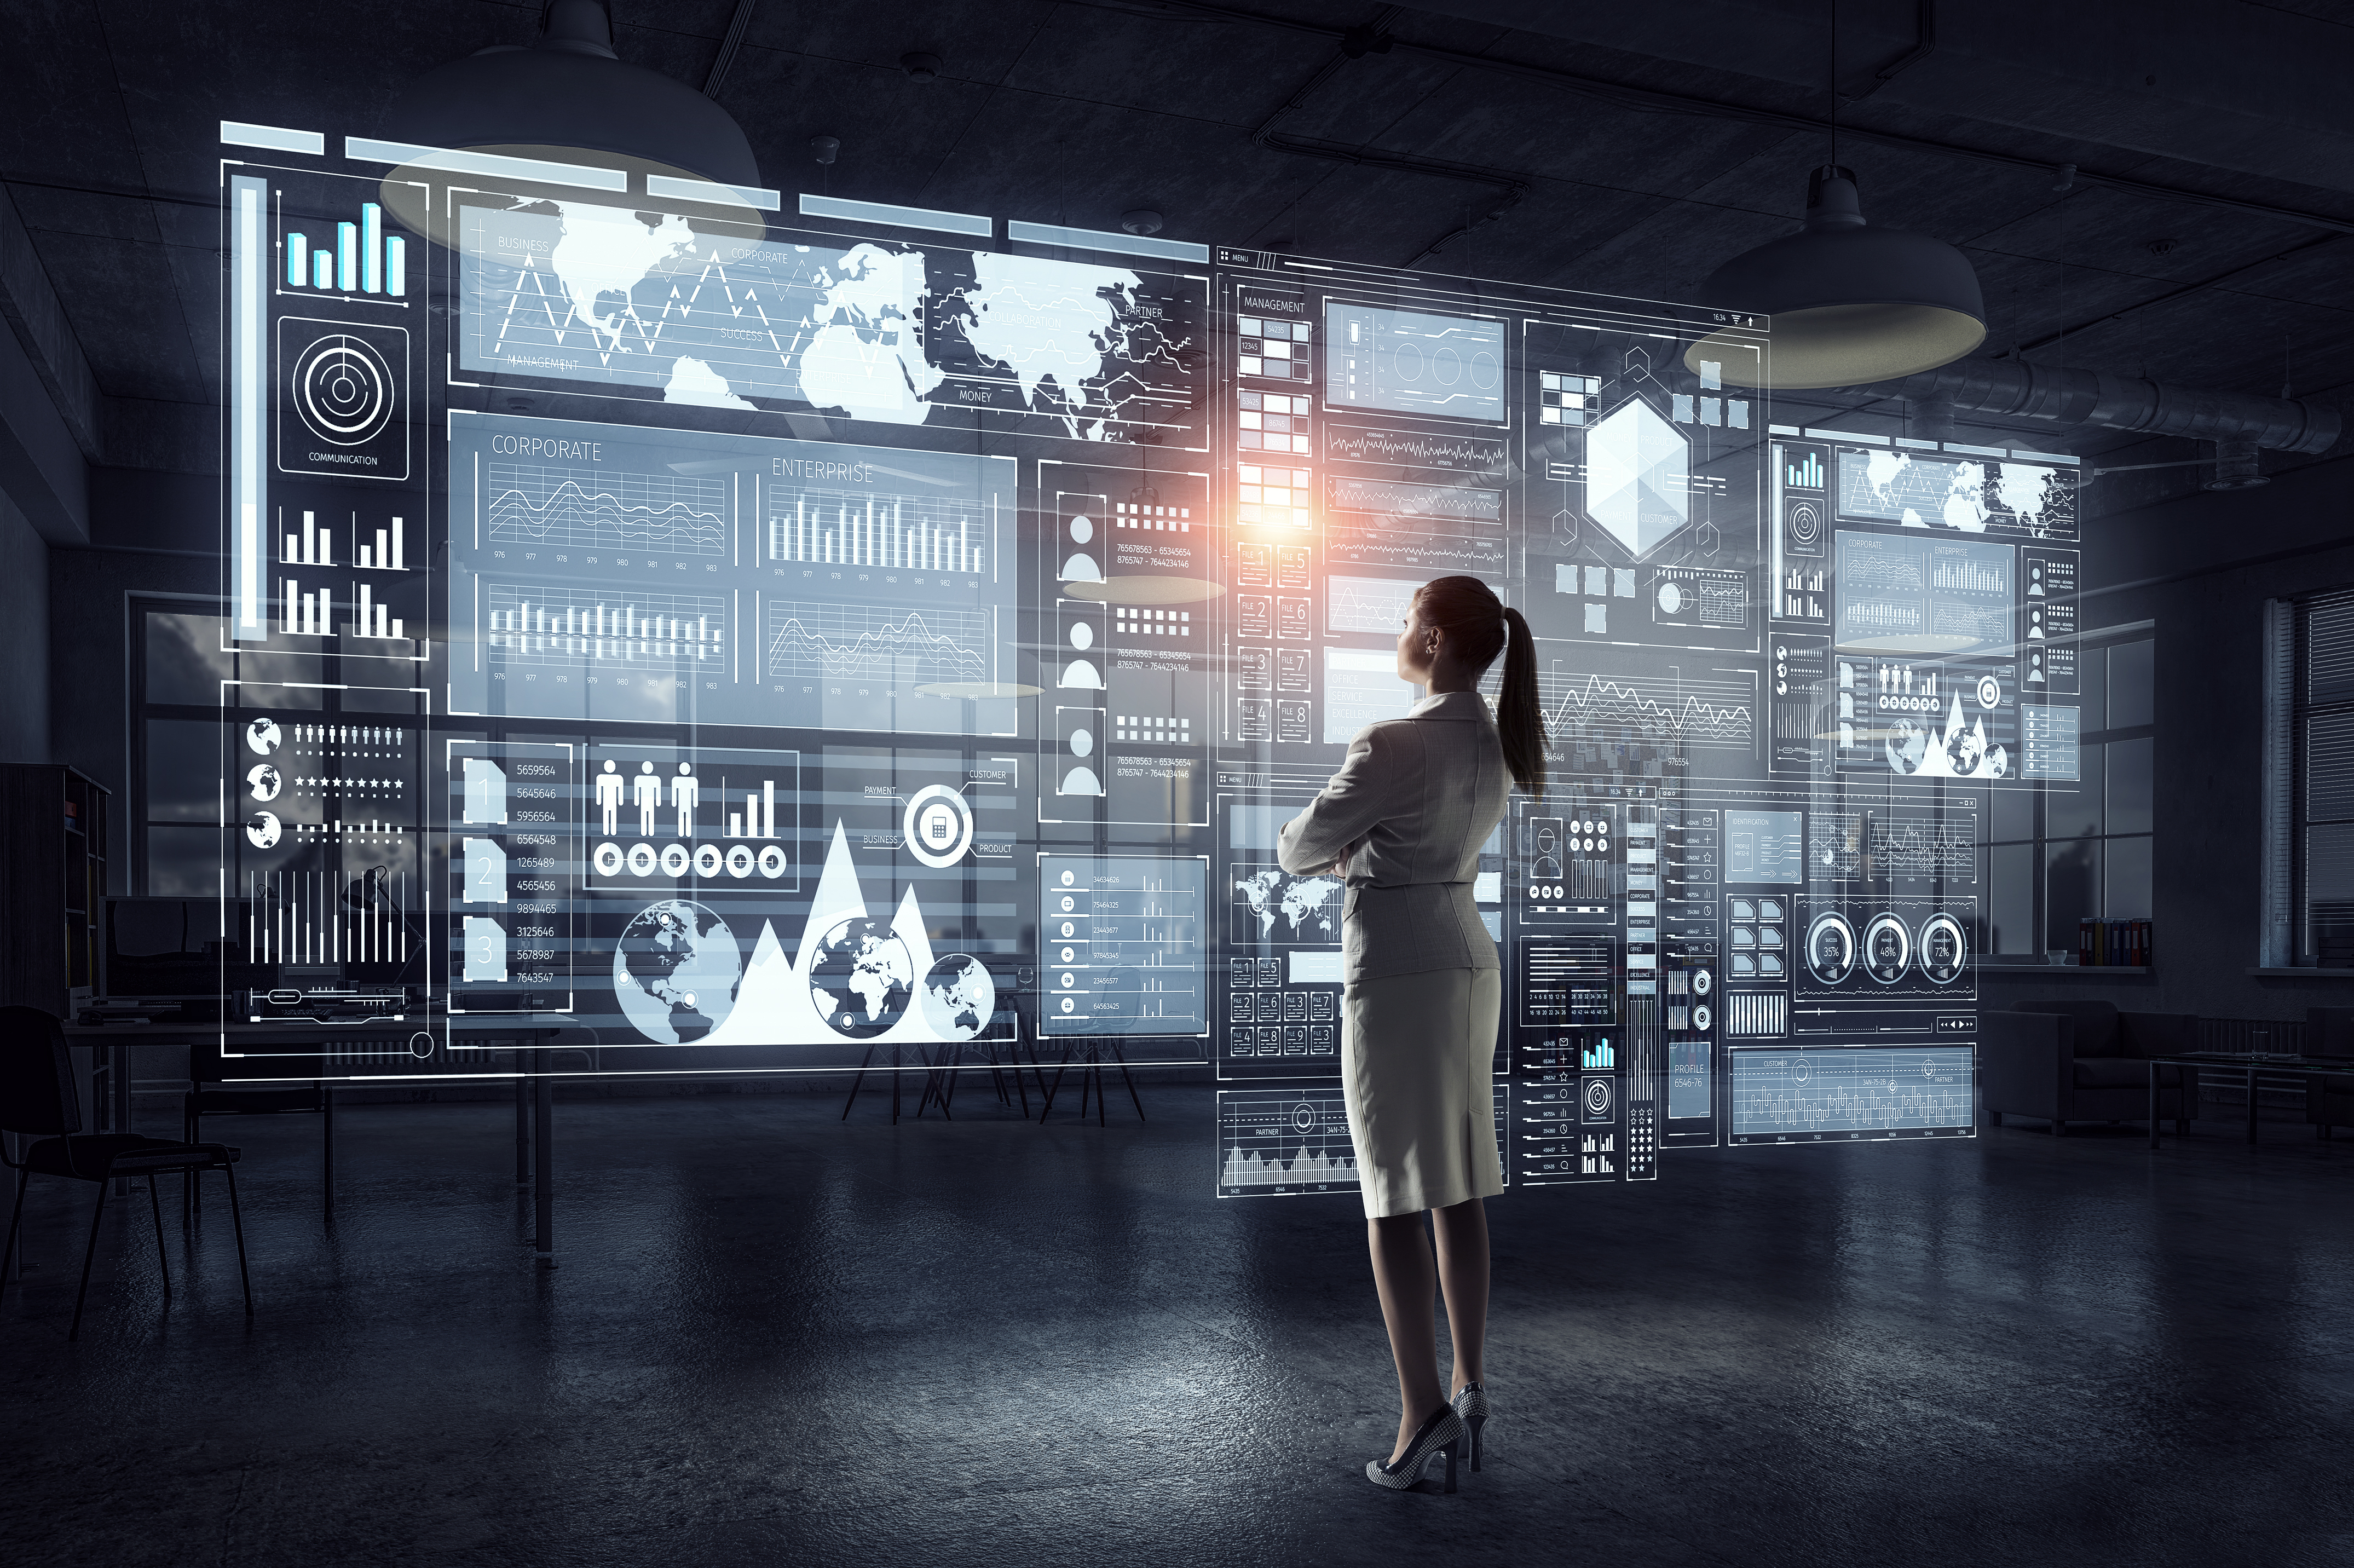 Supply Chain Digital Transformation Requires Women Leaders